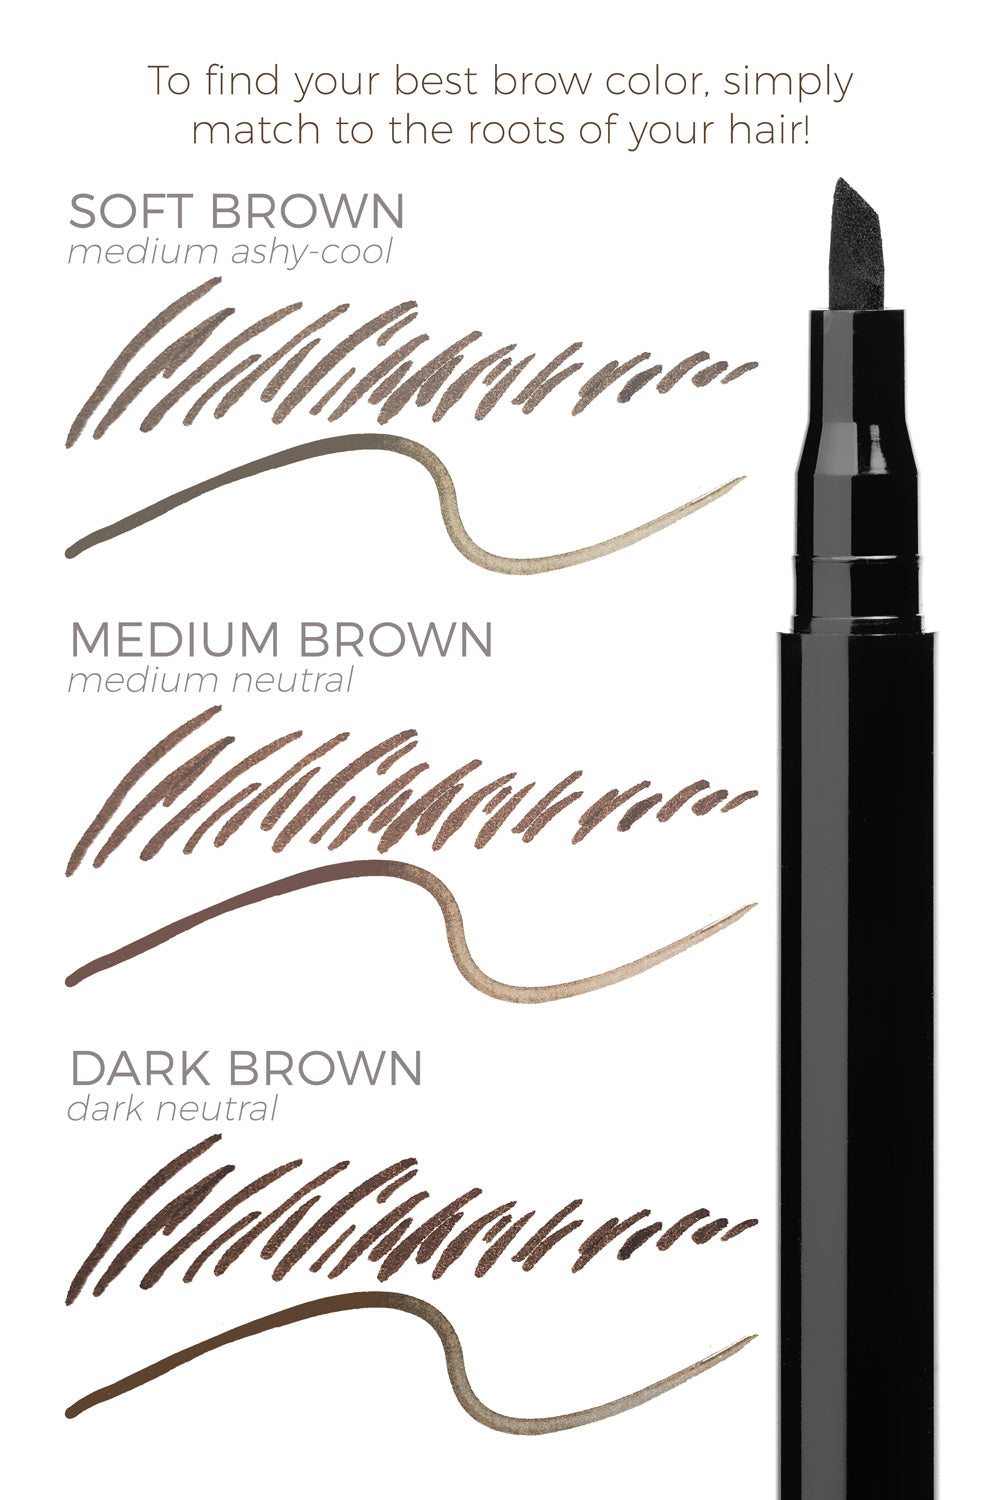 Dark Brown - Felt Tip Brow Definer Pen